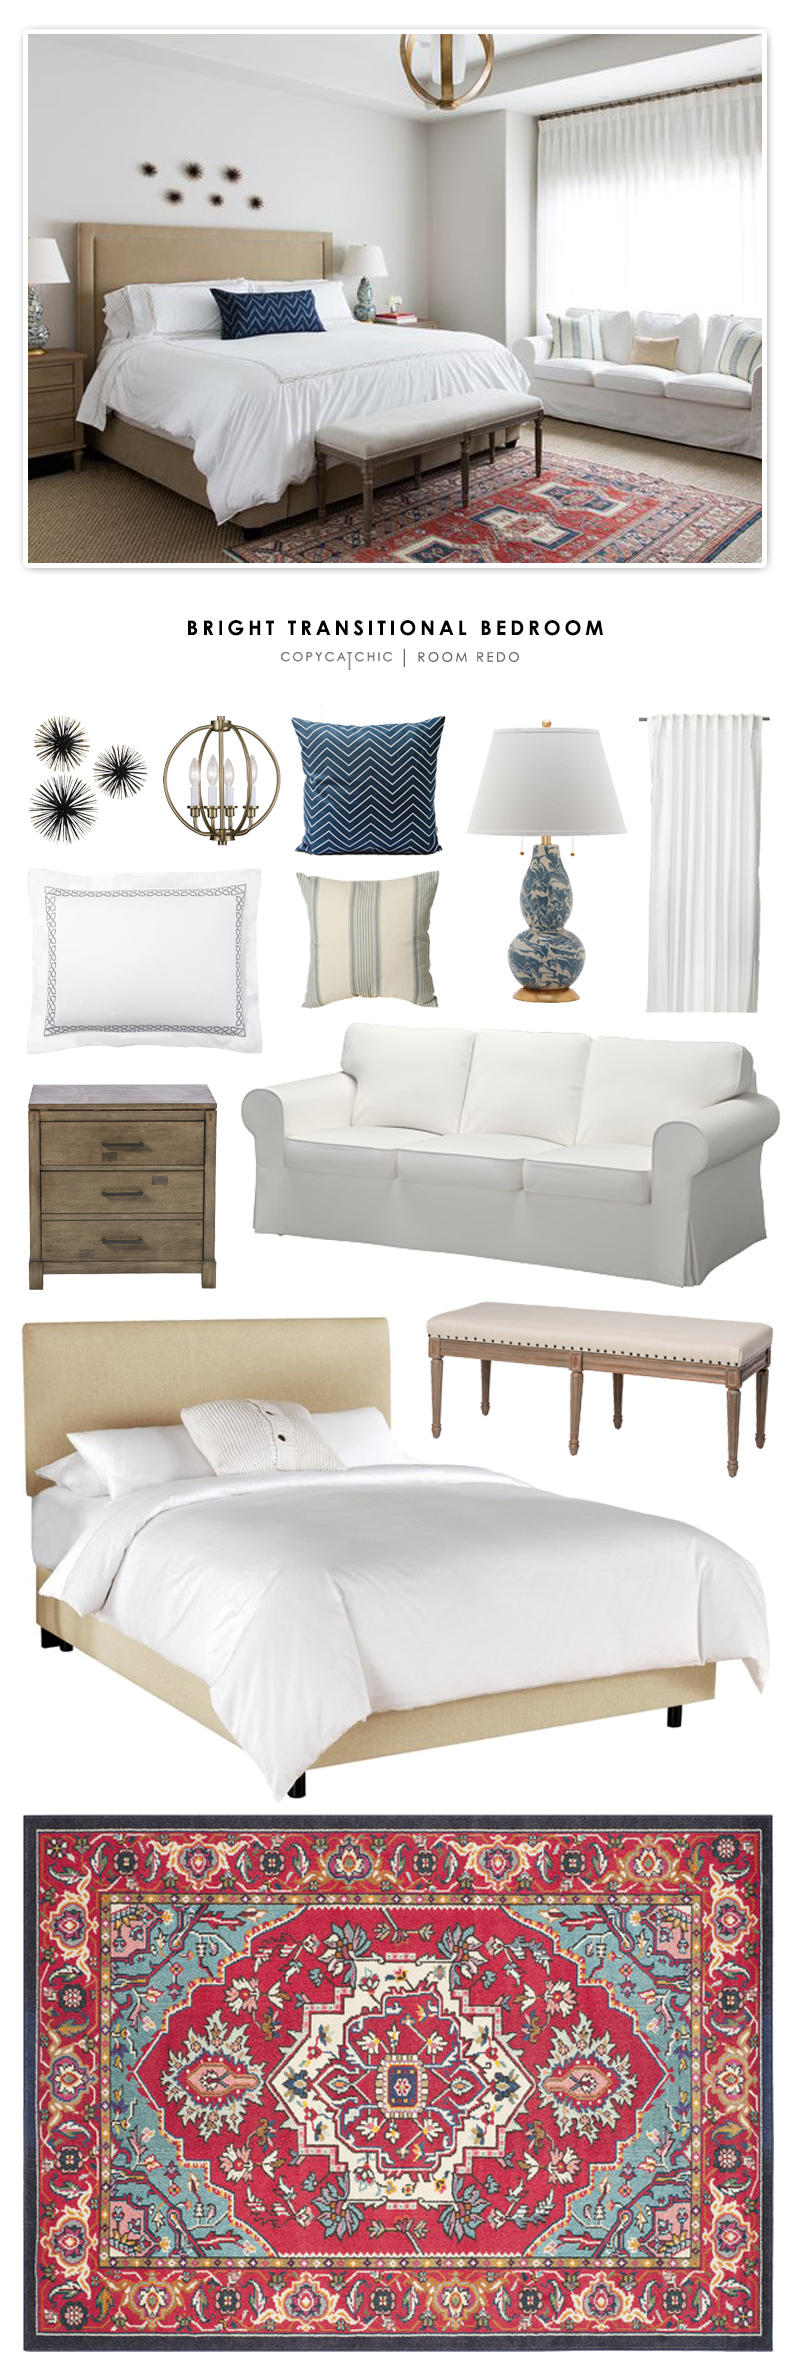 Copy cat chic room redo bright transitional bedroom How to redo a bedroom cheap